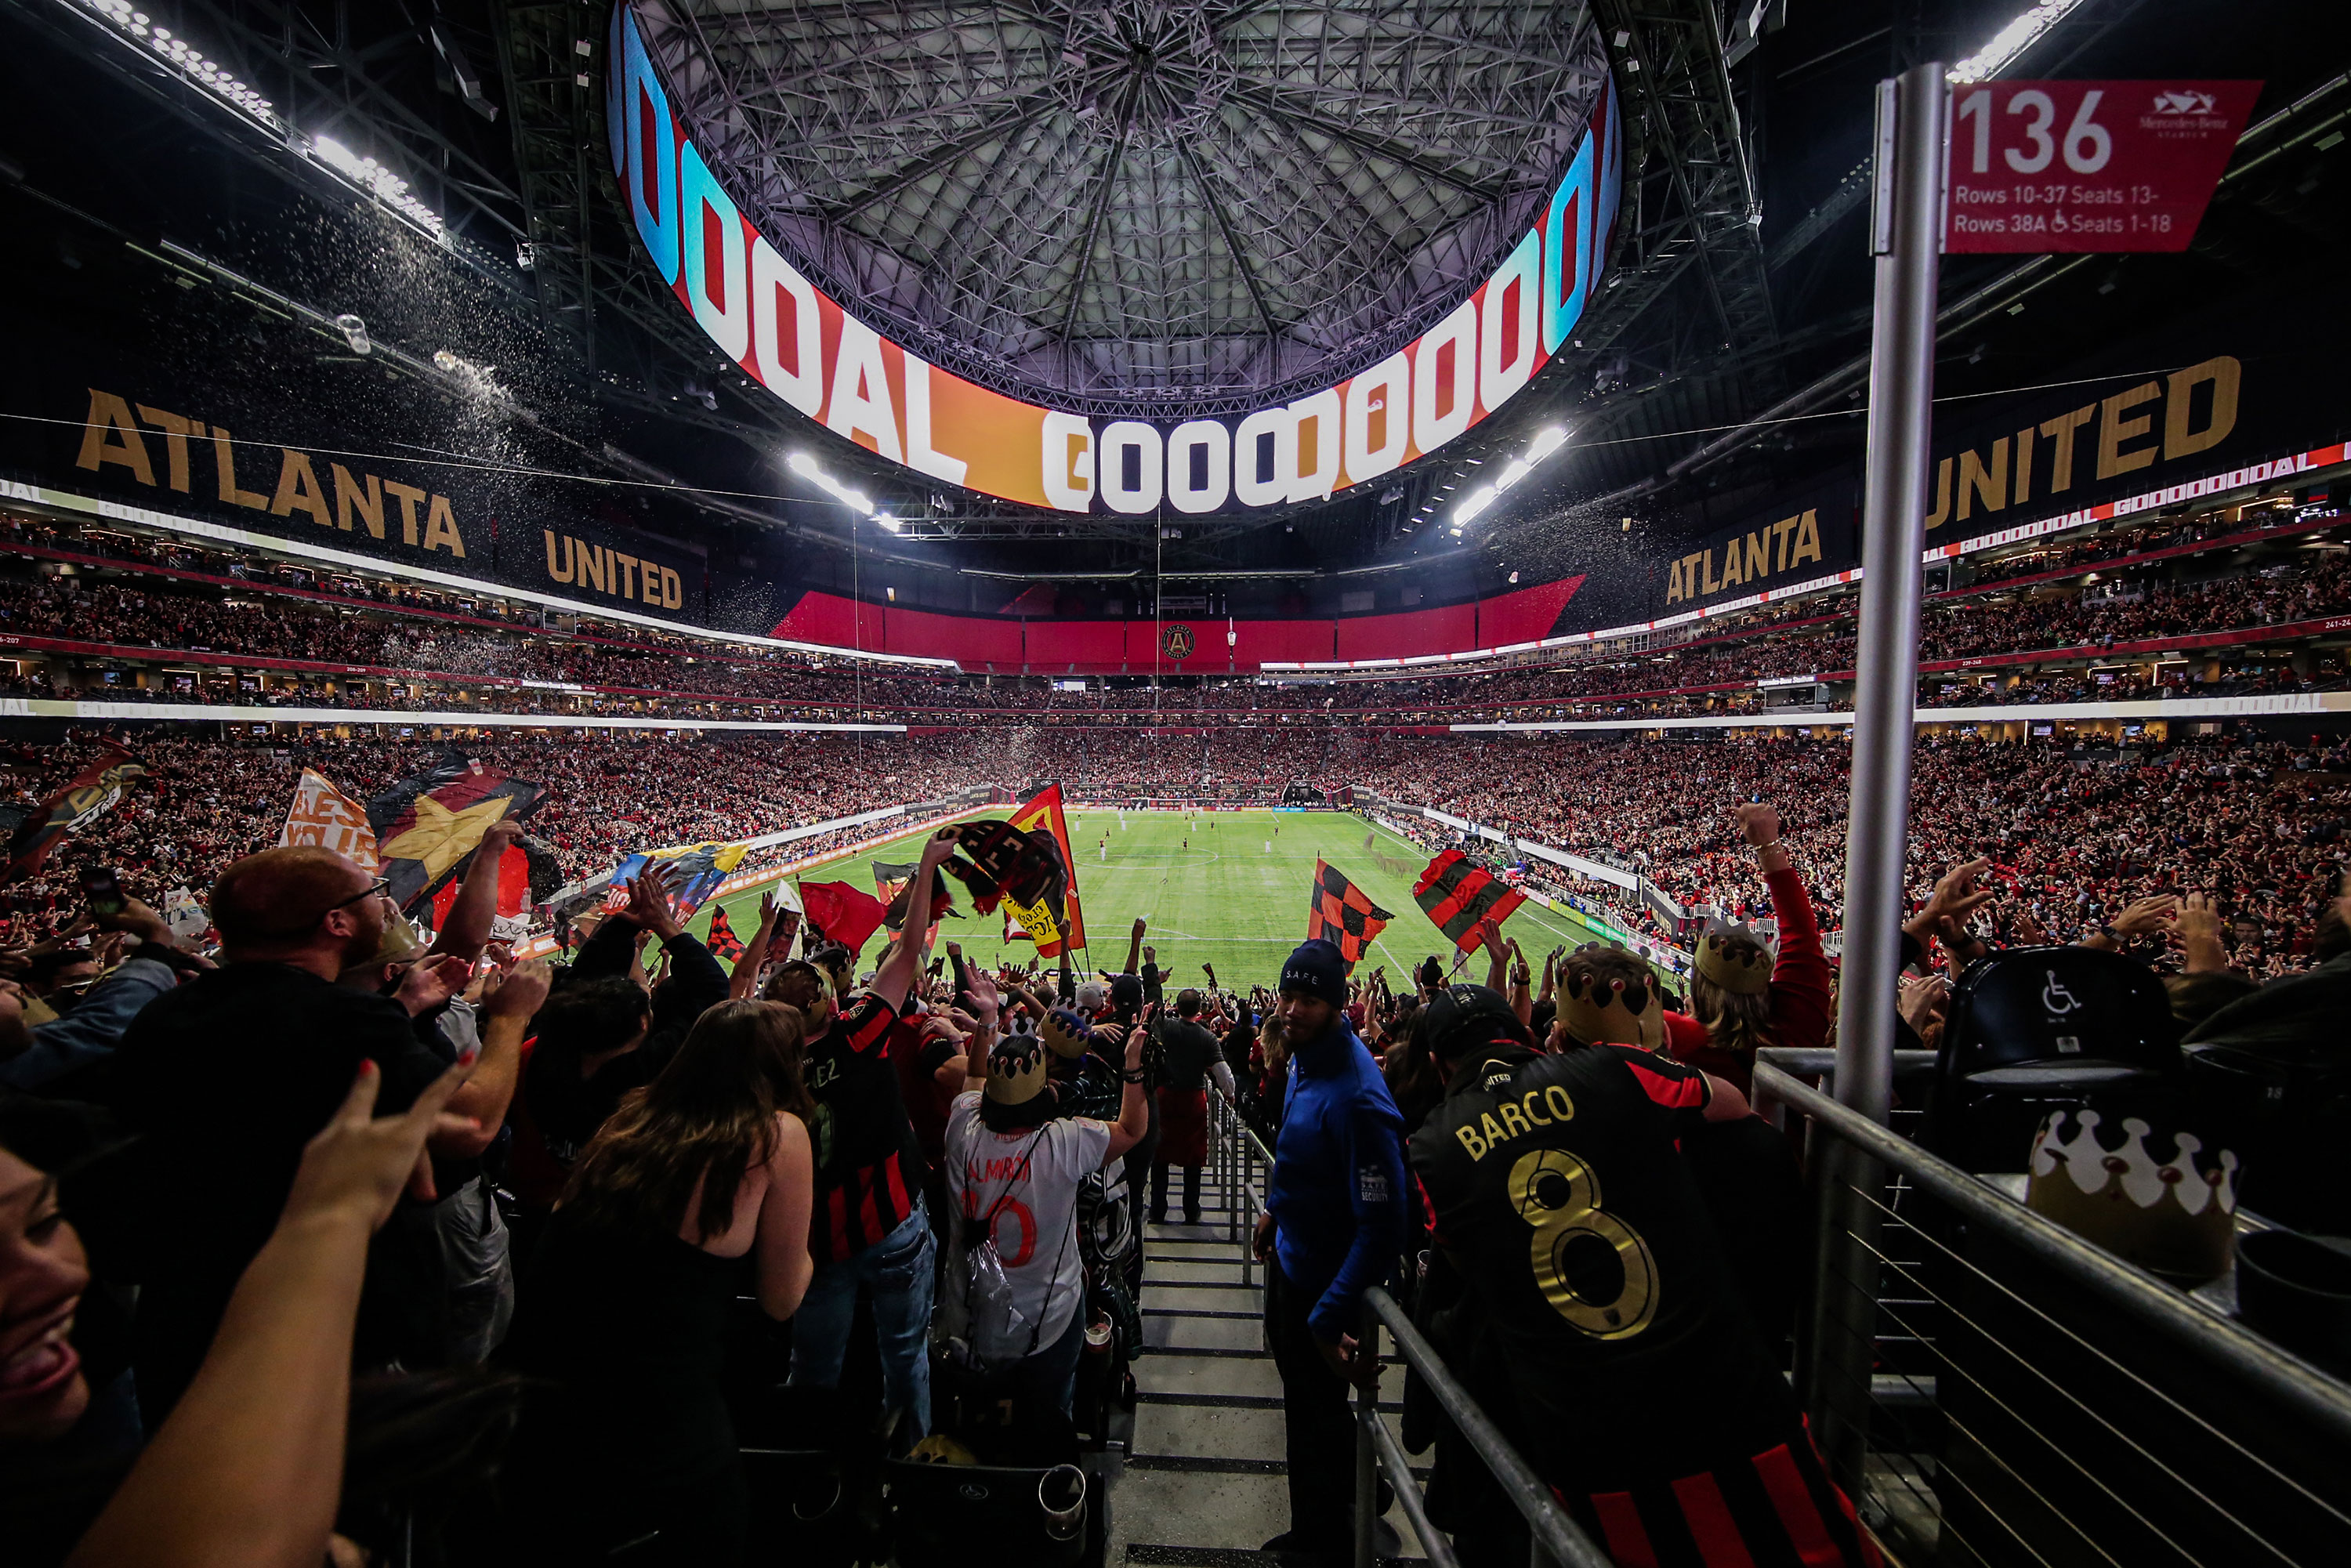 Fans celebrate a goal scored by Atlanta United at Mercedes-Benz Stadium Atlanta in 2019.